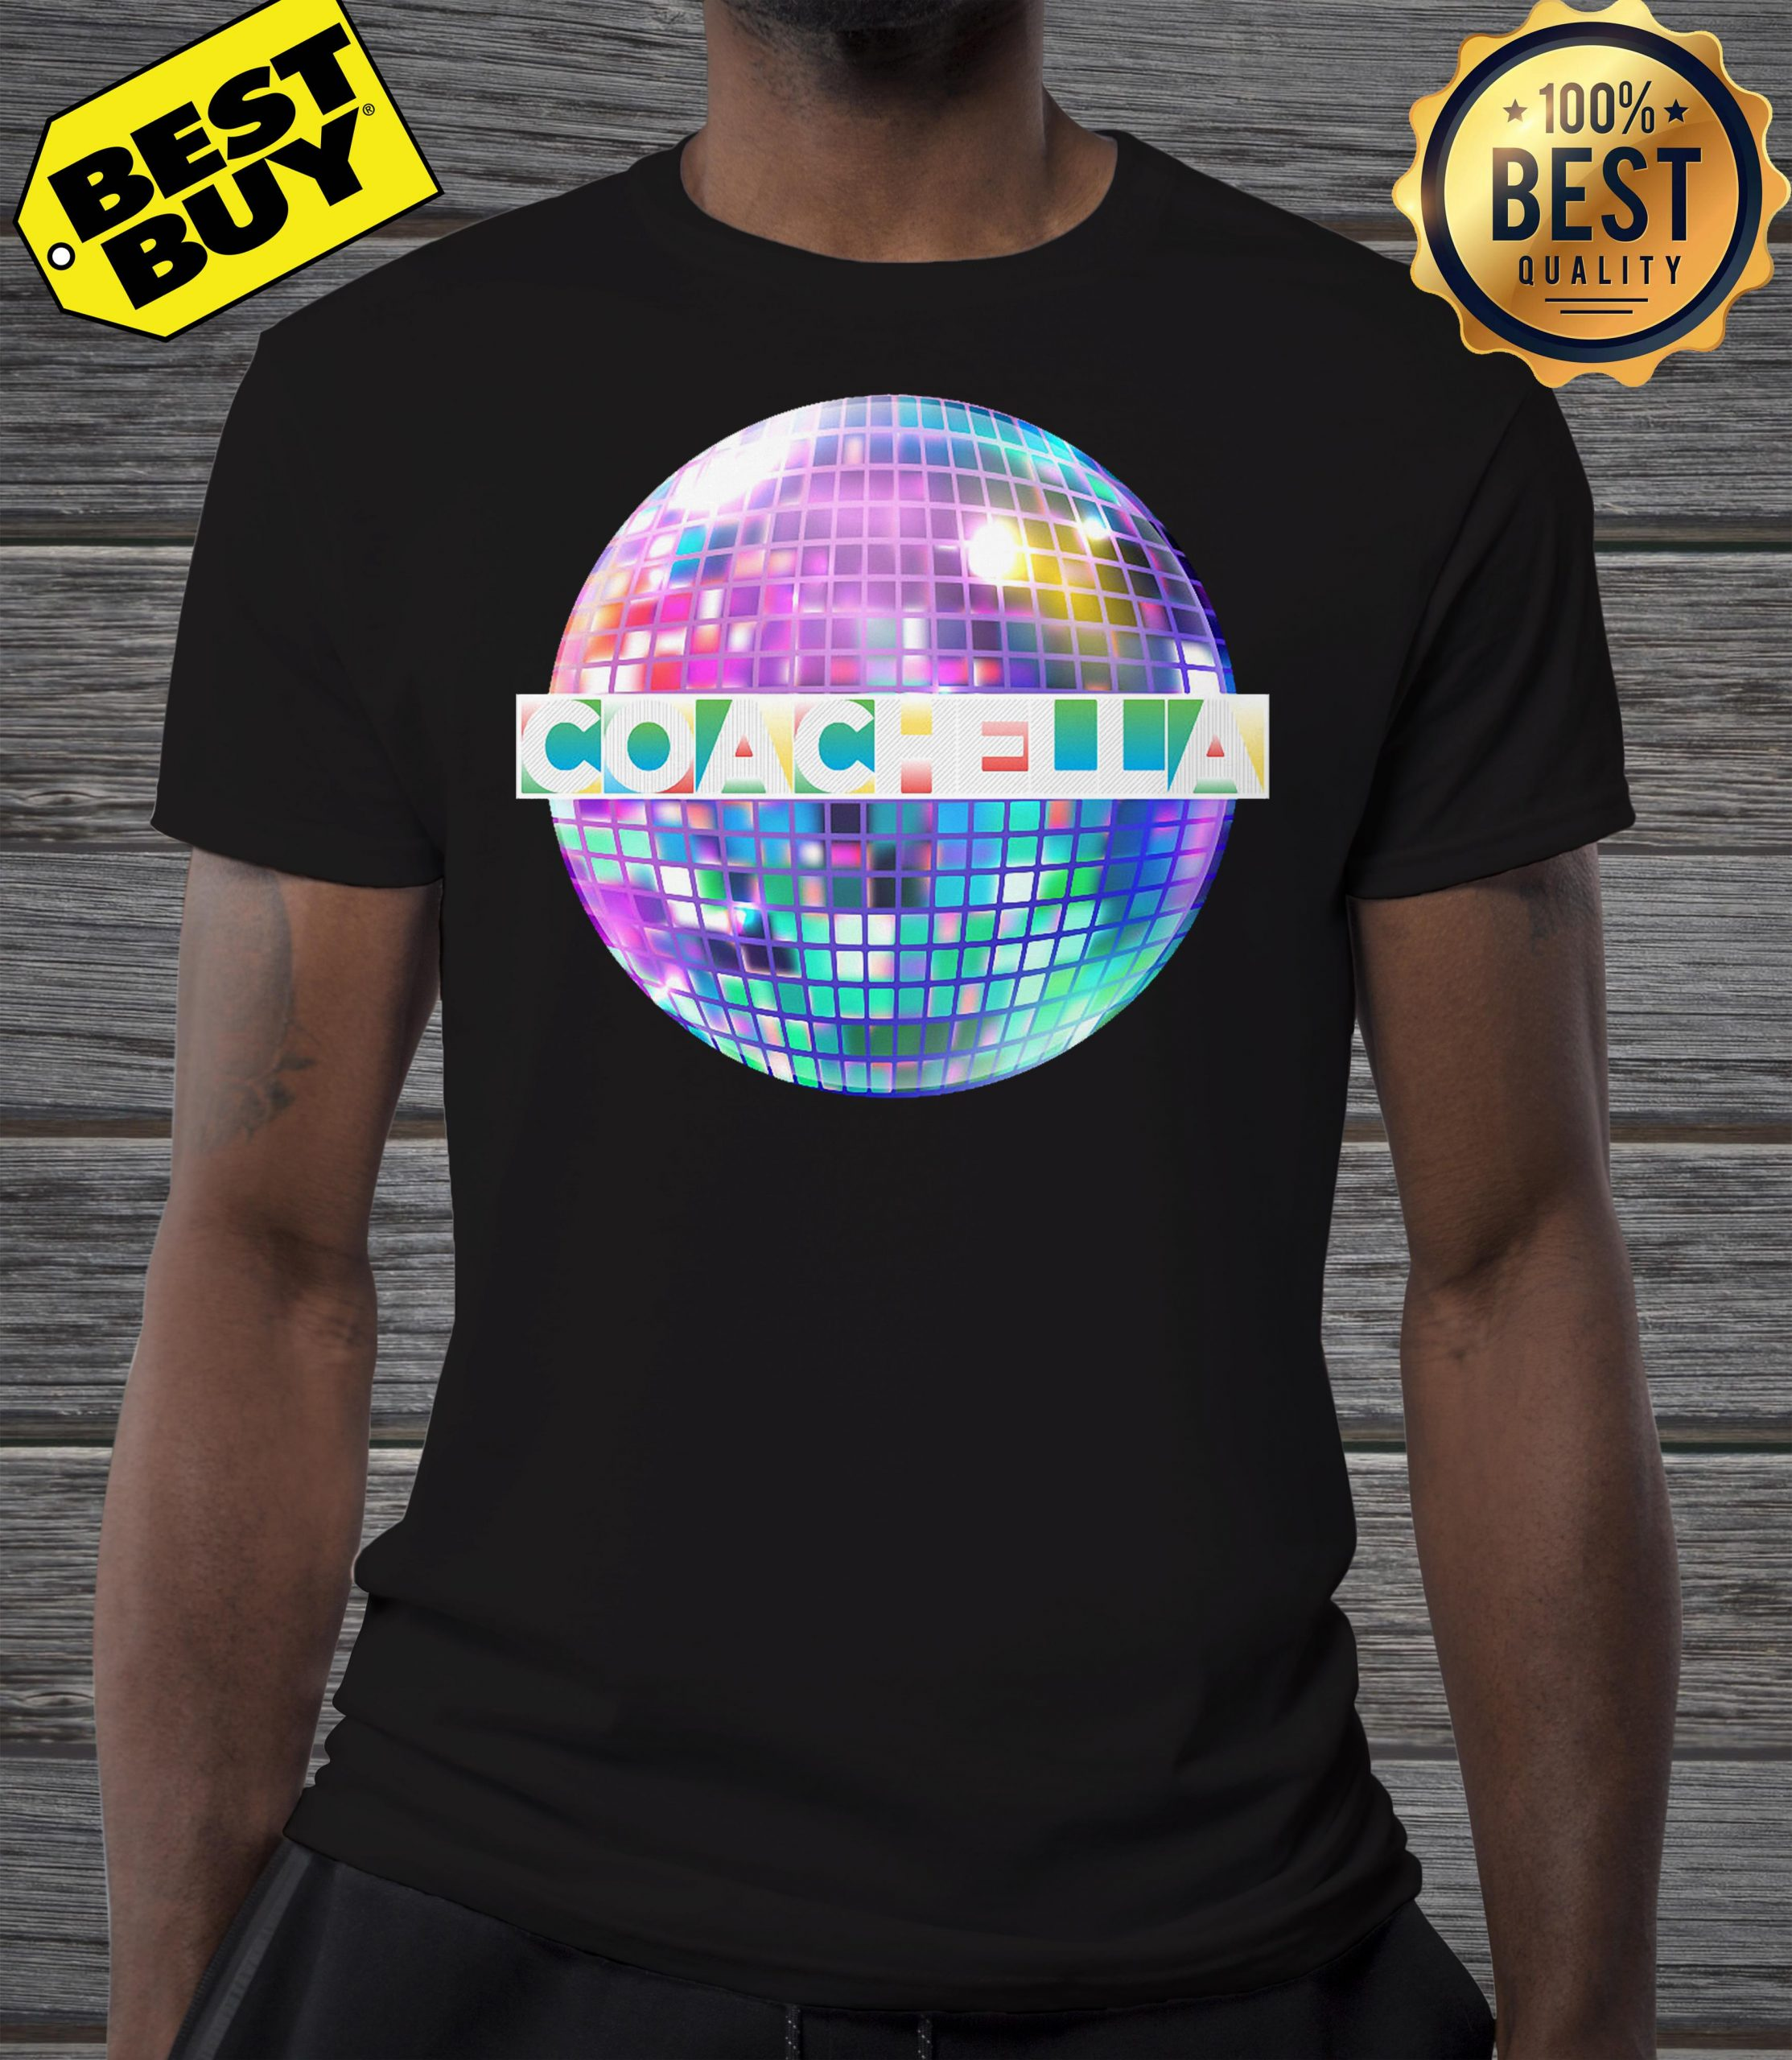 Light-up Blinking Coachella shirt